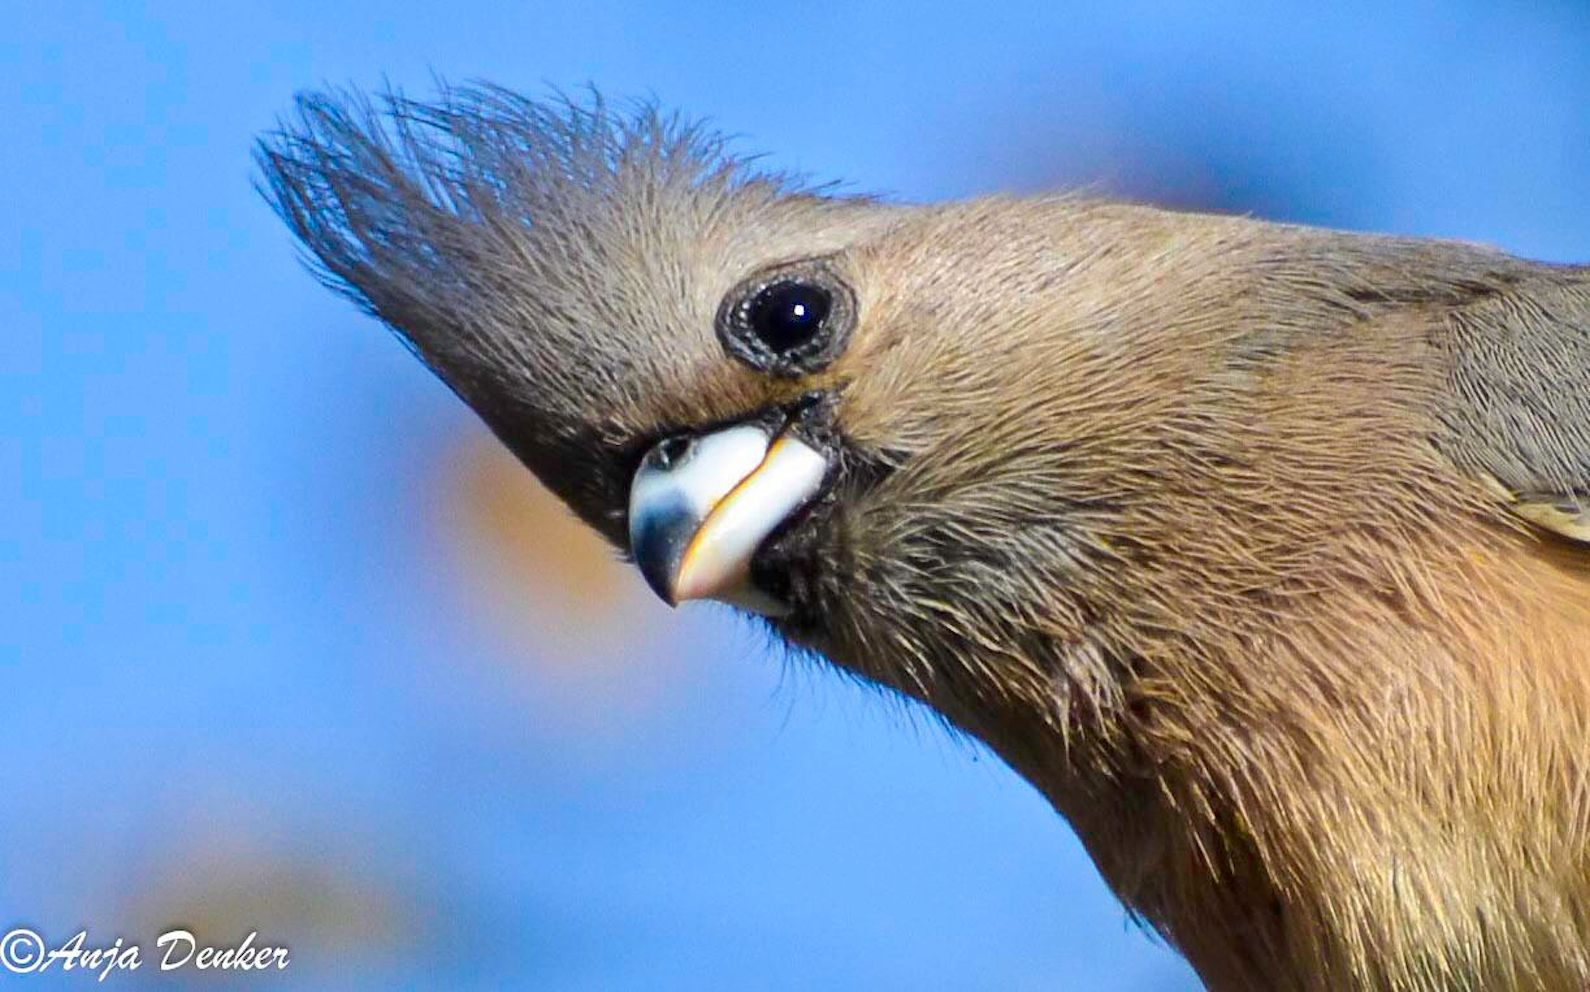 Whitebacked mousebirds are distributed in the W and central regions of southern Africa. They are frugivores that subsist on fruits, berries, leaves, seeds and nectar, and need to bask in the sun to ferment food in their bellies.